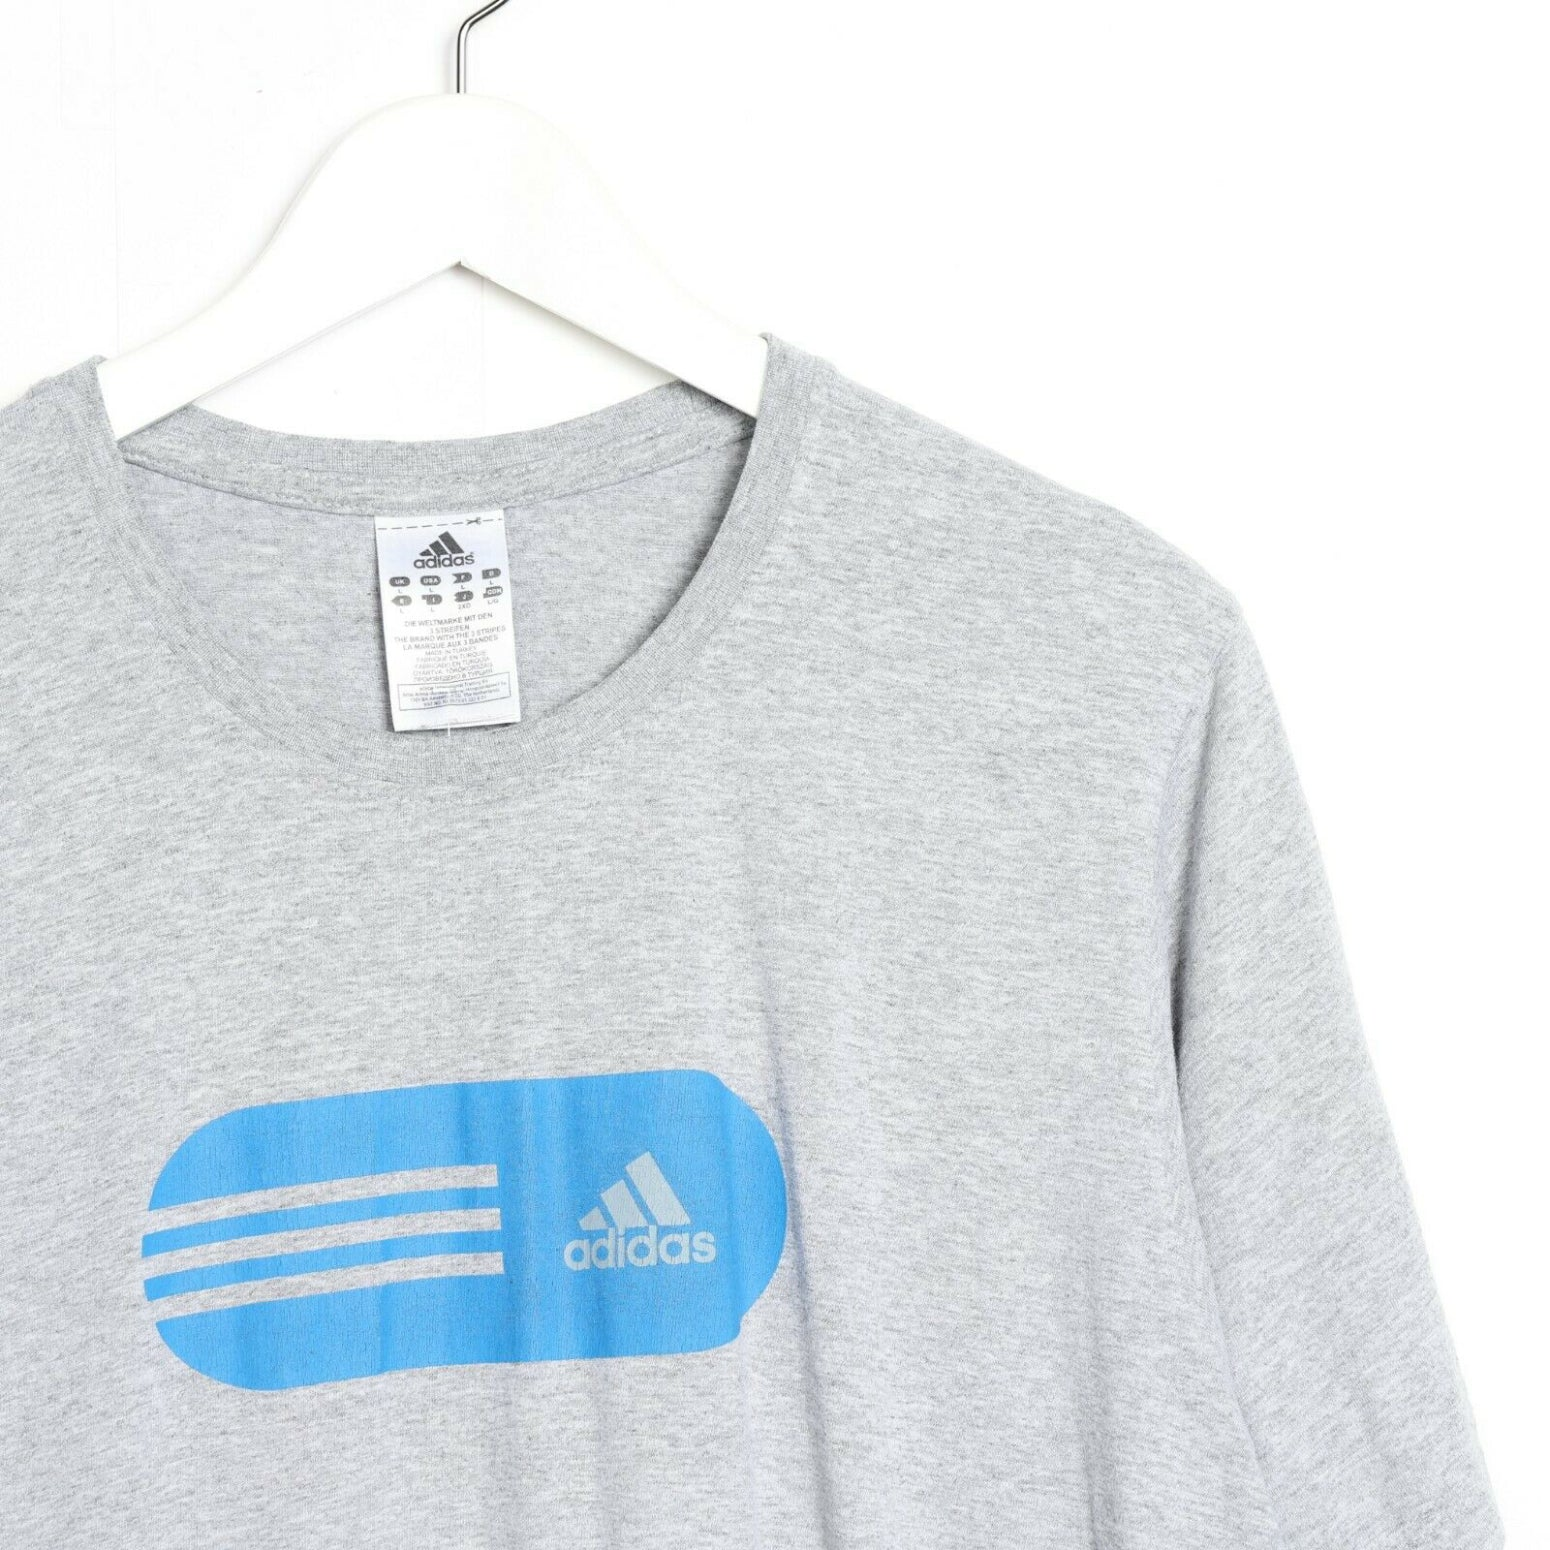 Vintage ADIDAS ORIGINALS Big Logo T Shirt Tee Grey Large L